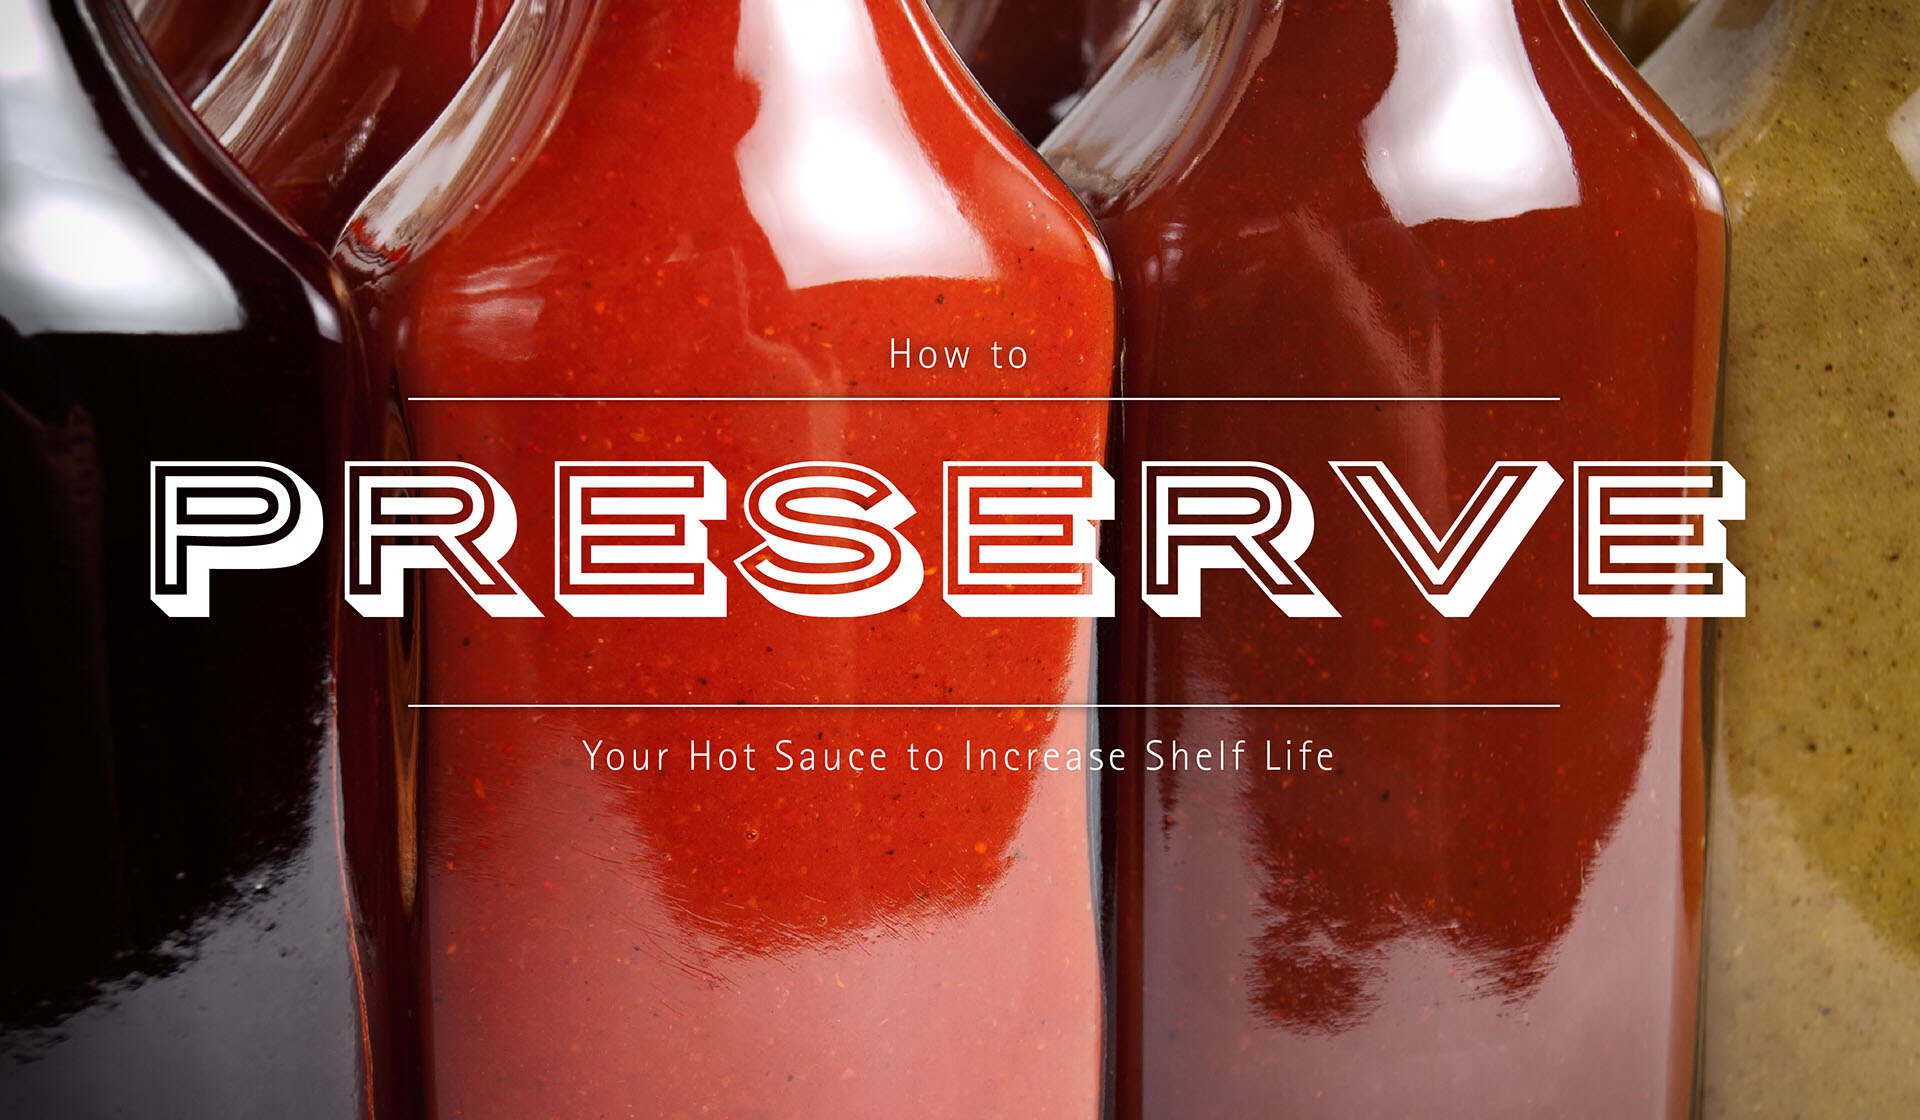 How to Preserve Your Hot Sauce to Increase Shelf Life